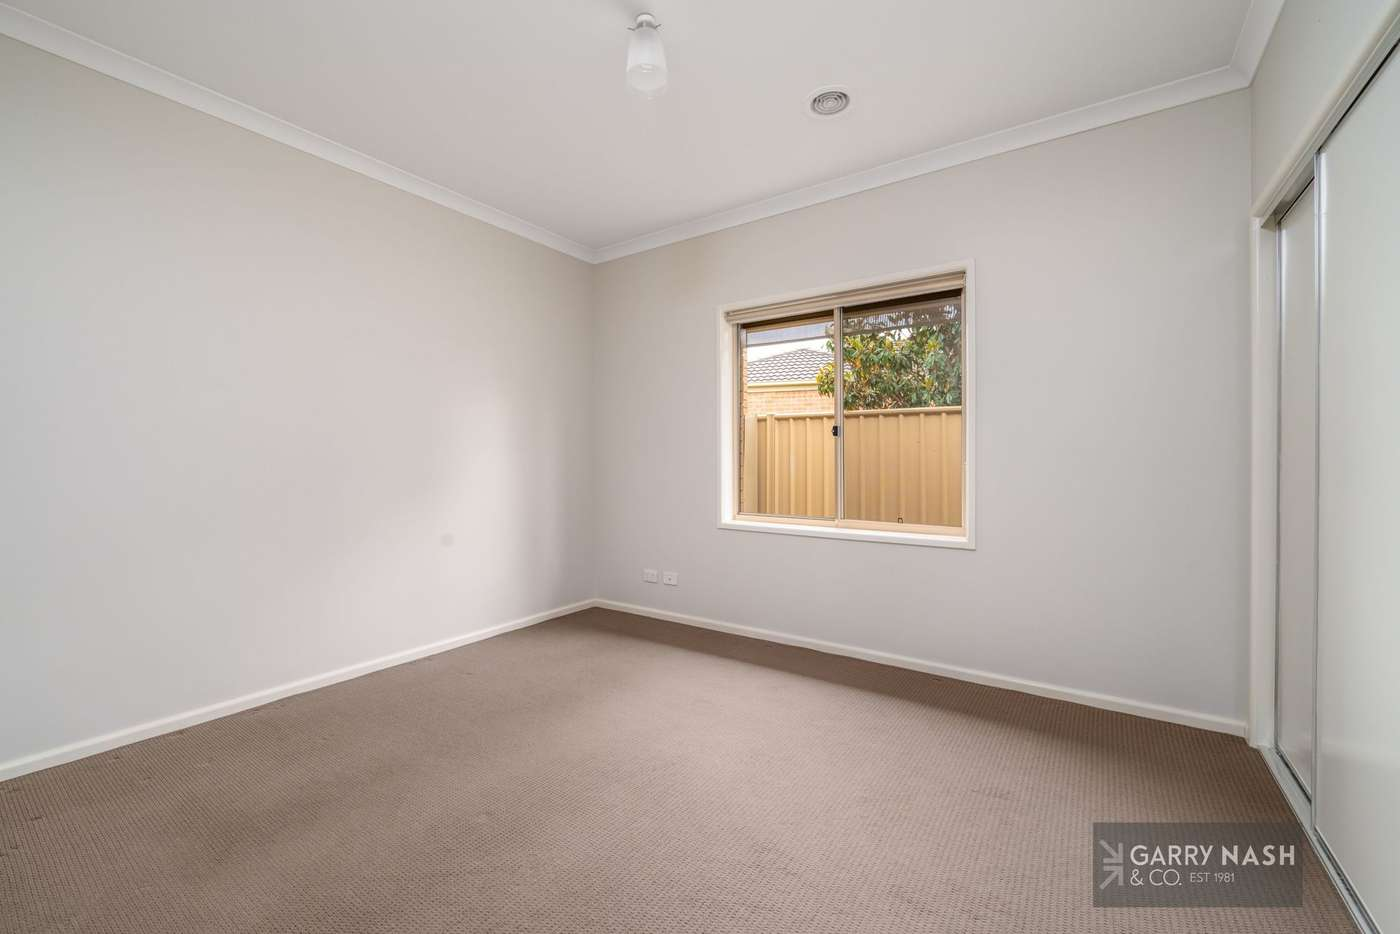 Seventh view of Homely house listing, 11 Froh Court, Wangaratta VIC 3677